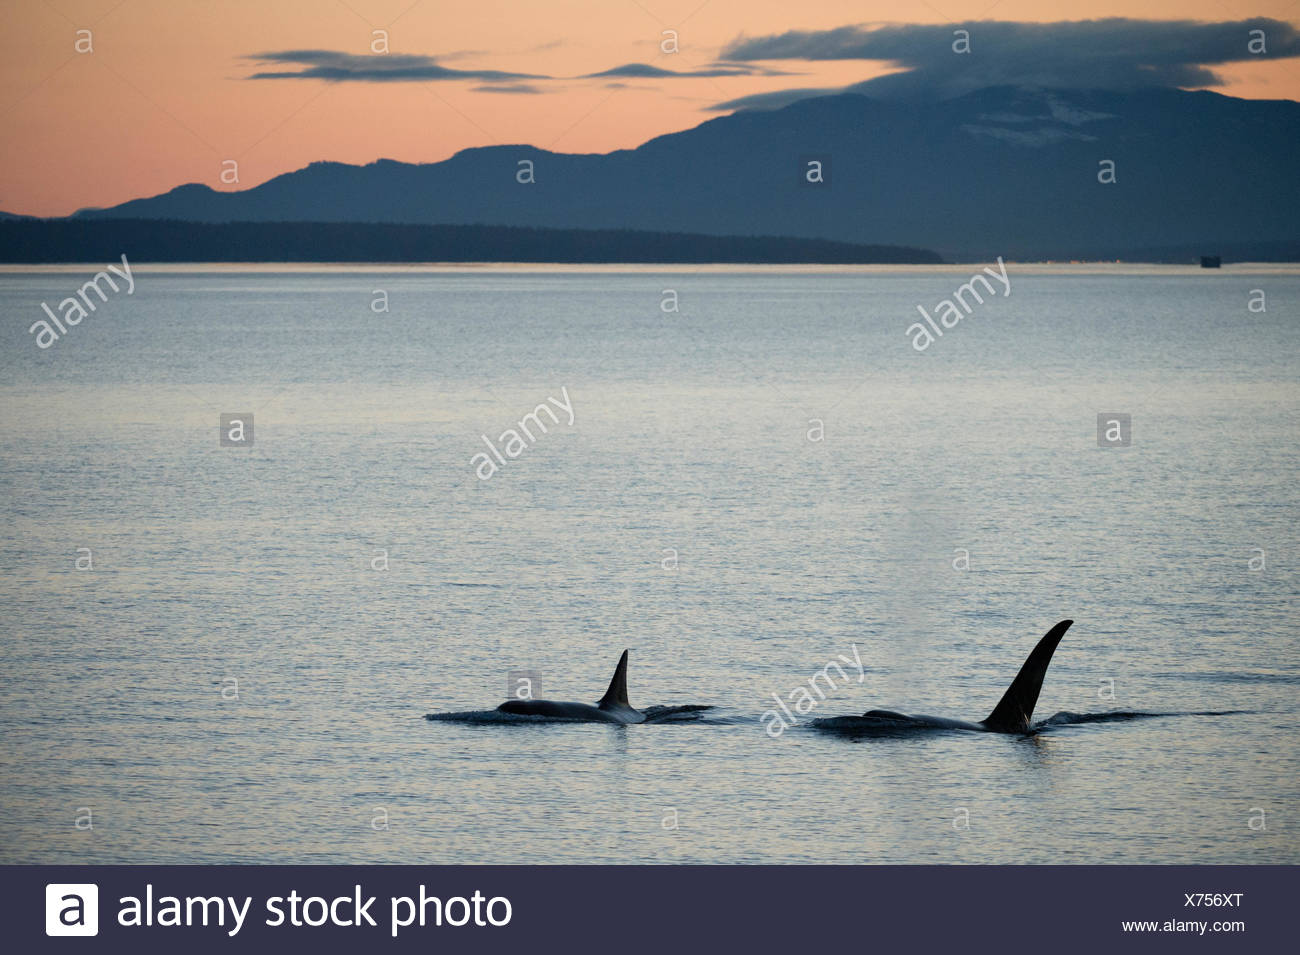 Two Killer whales in the inside passage, British Columbia, Canada. - Stock Image